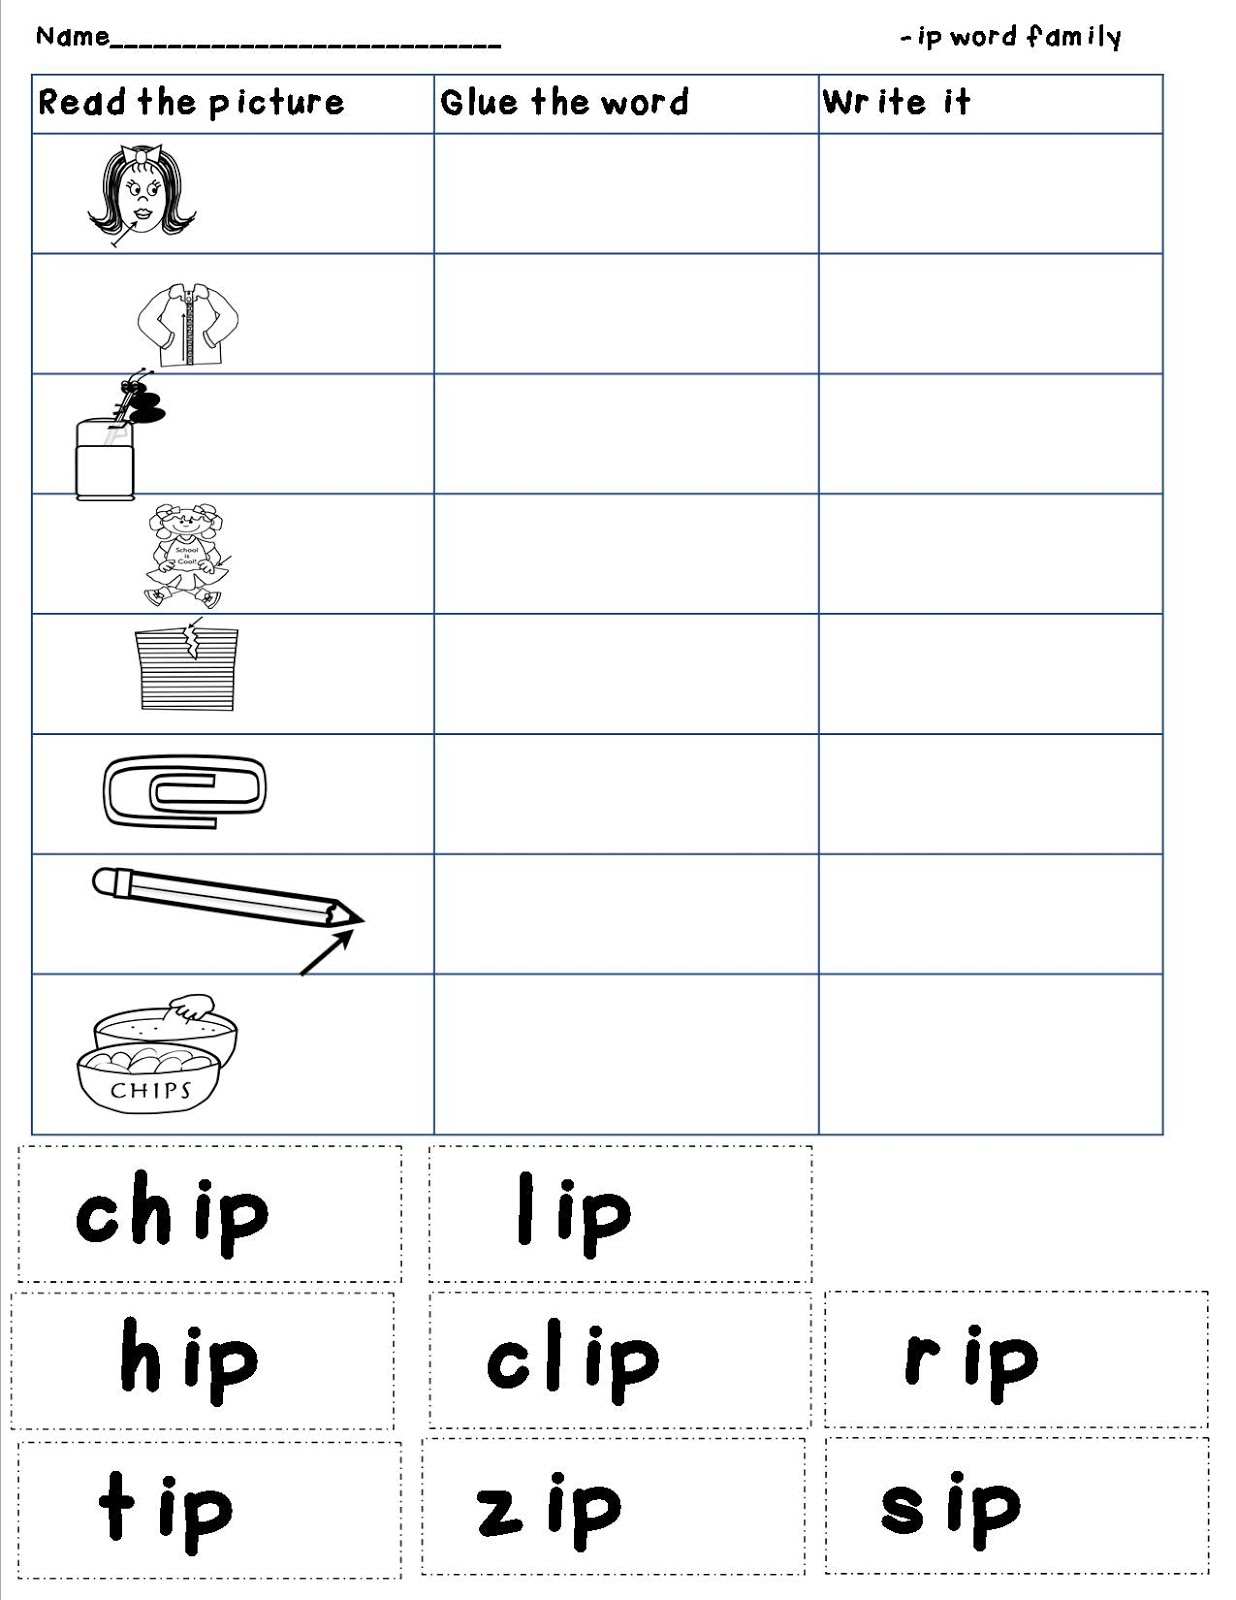 Ip Word Family Worksheets Kindergarten Worksheet Kids – Word Families Worksheets Kindergarten